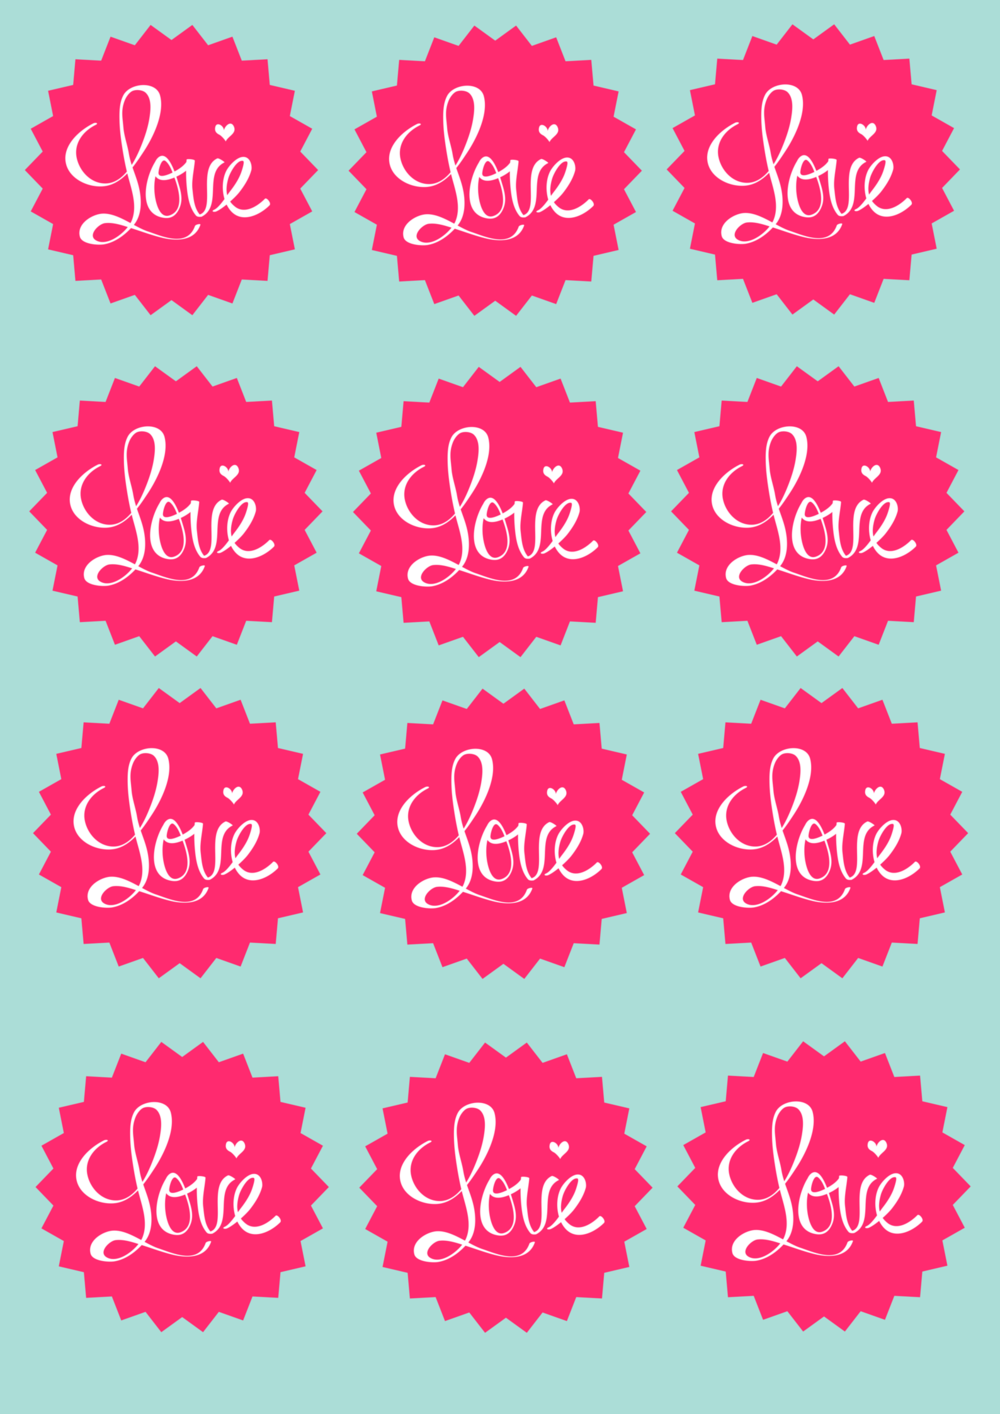 LOVE Stickers that can be used as bottle labels or cupcake toppers